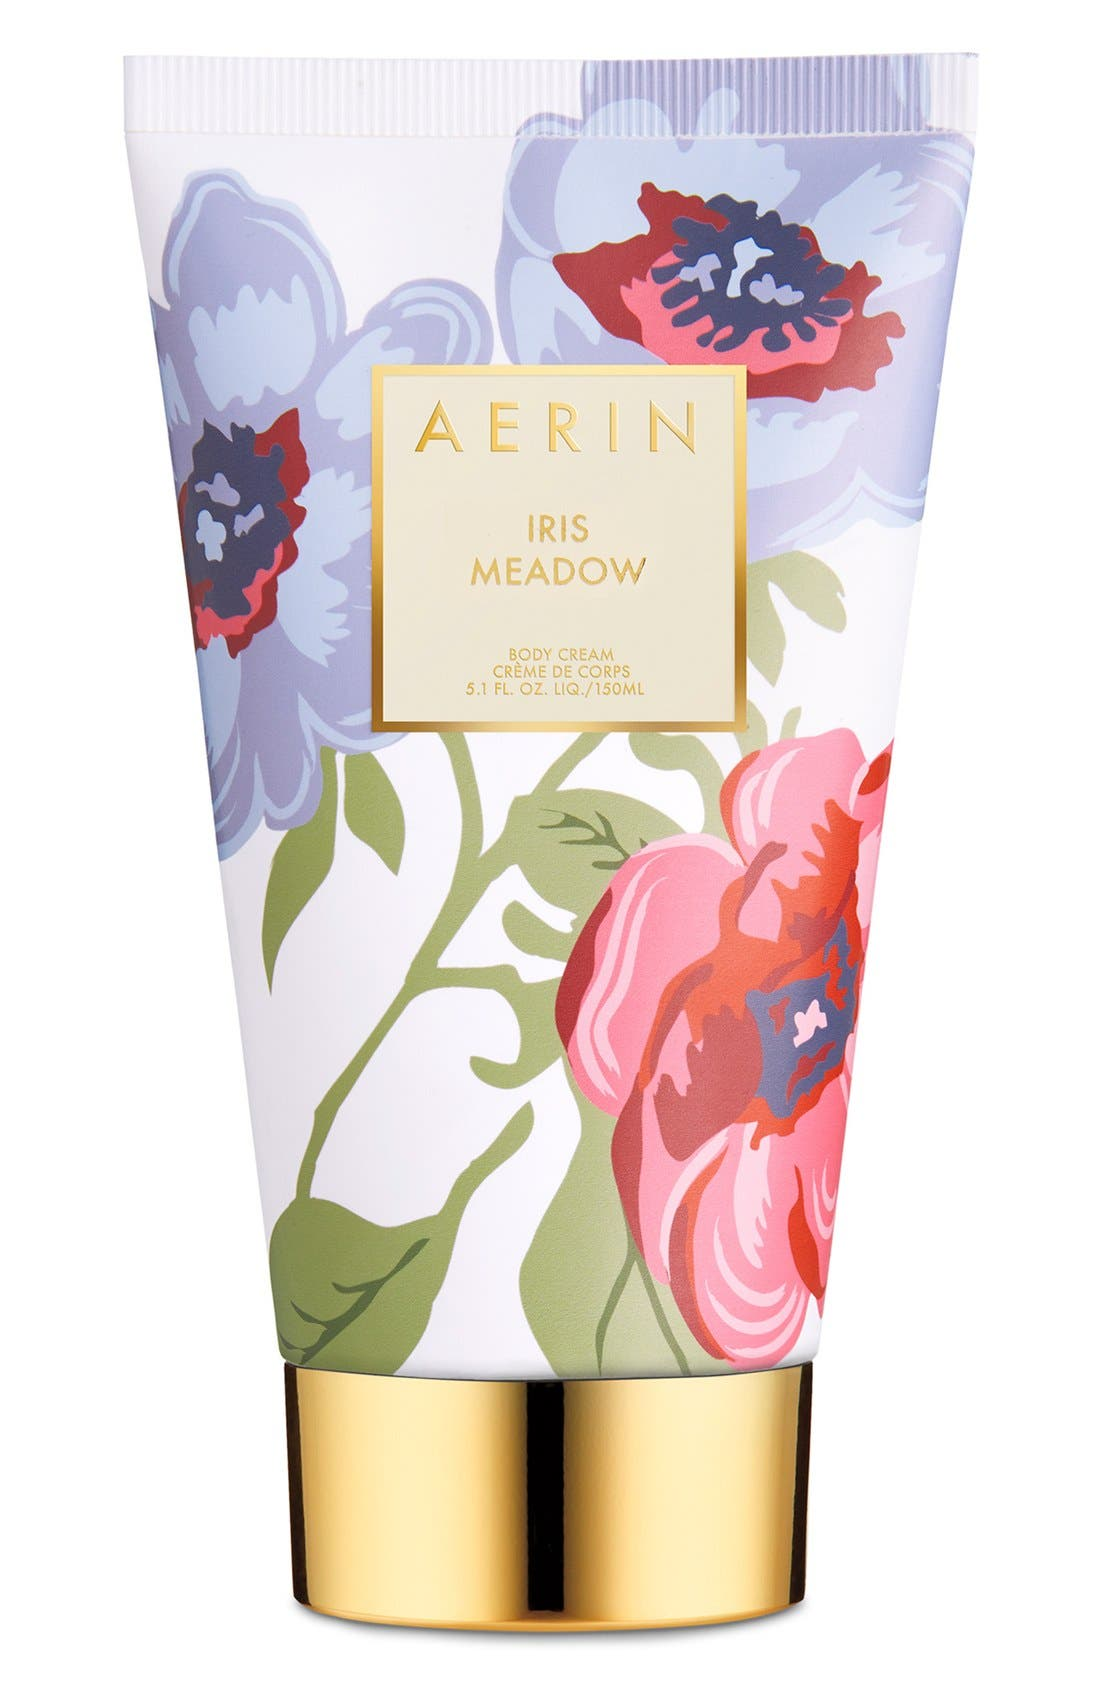 AERIN Beauty Iris Meadow Body Cream